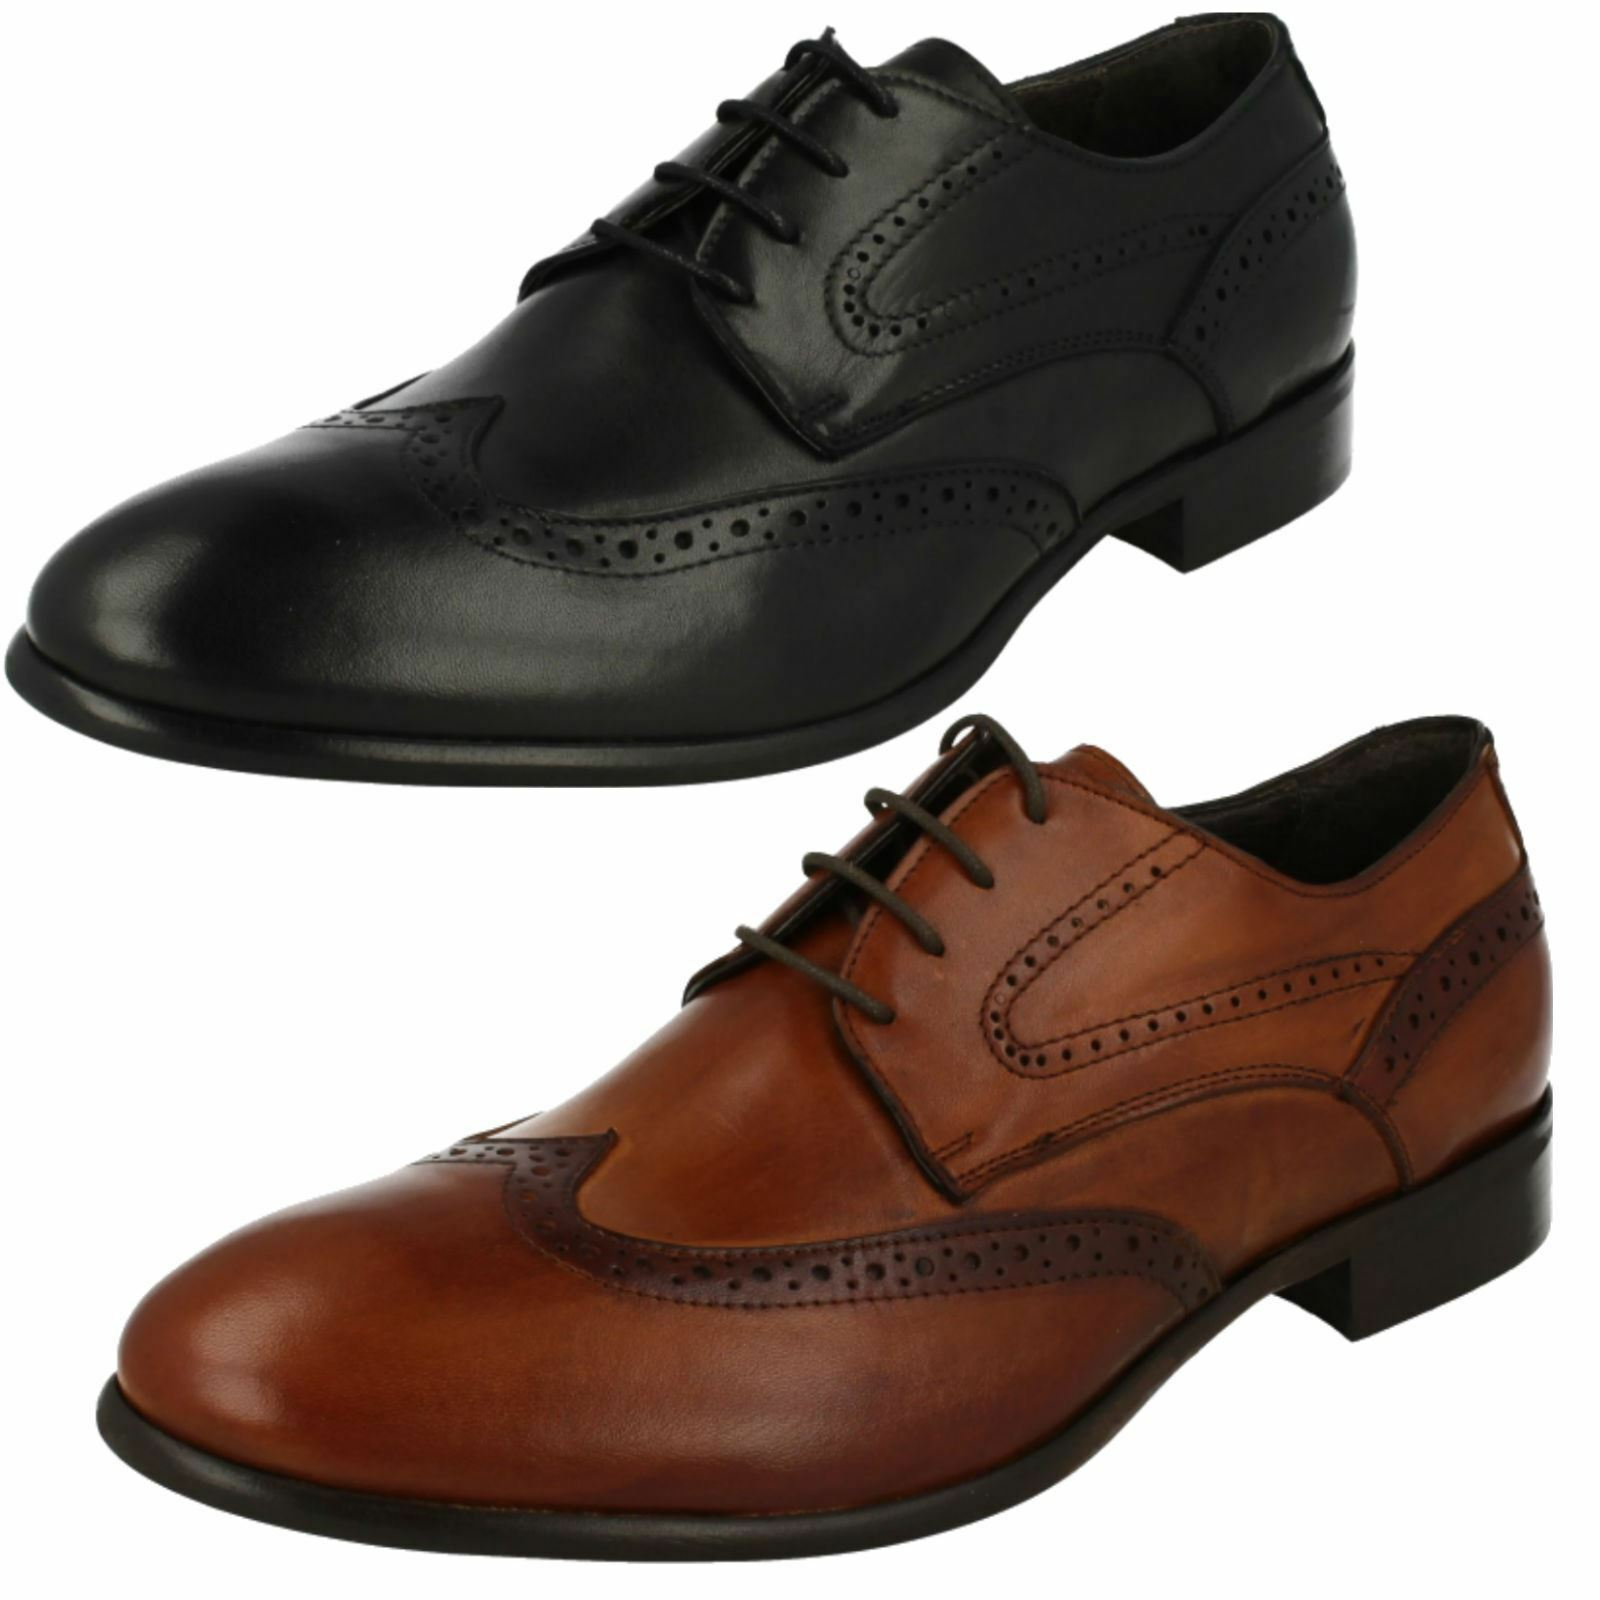 Homme Morena Gabbrielli Lacets Chaussures-FA-B2423